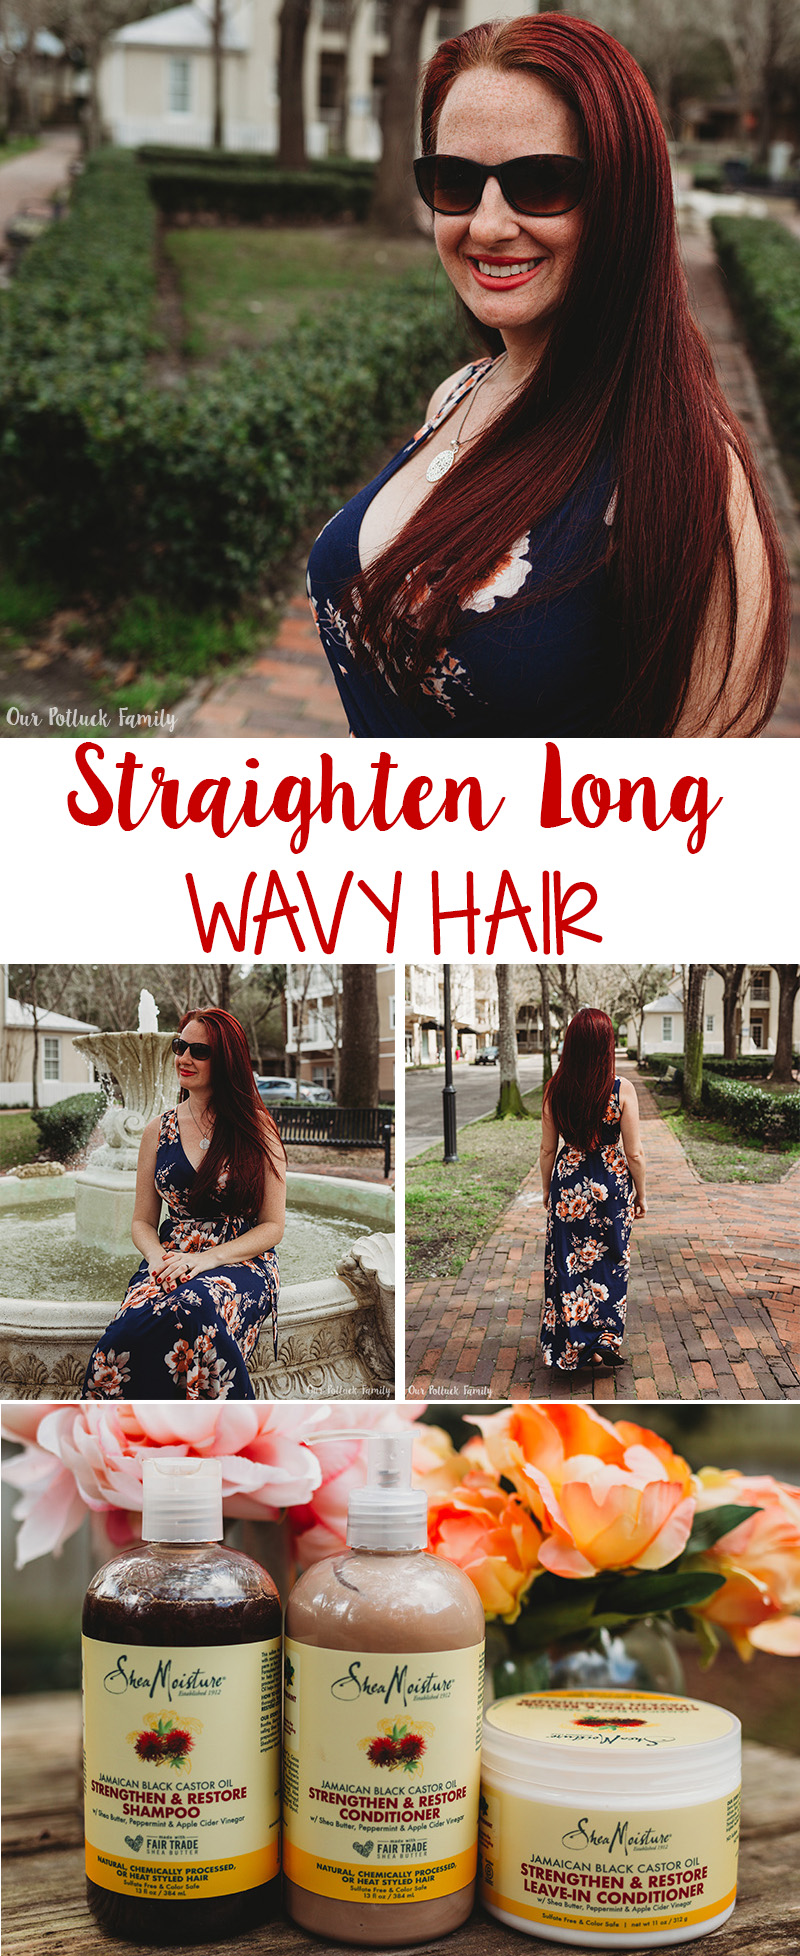 Straighten Long Wavy Hair